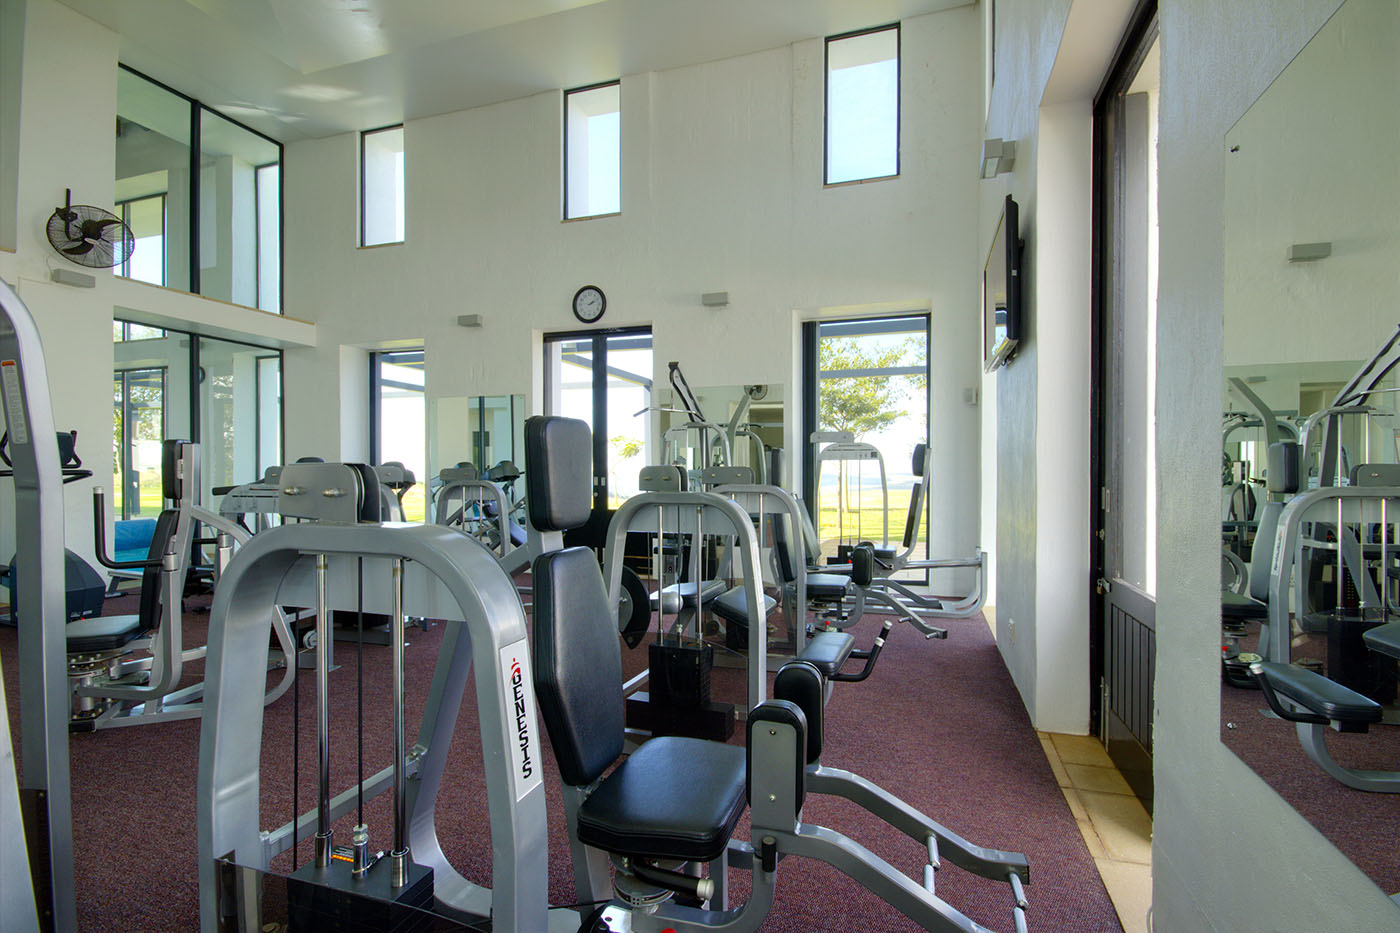 gym-garlington-estate-mirror-luxury-country-development-hilton-midlands-meander-countryside-contemporary-lifestyle-kzn